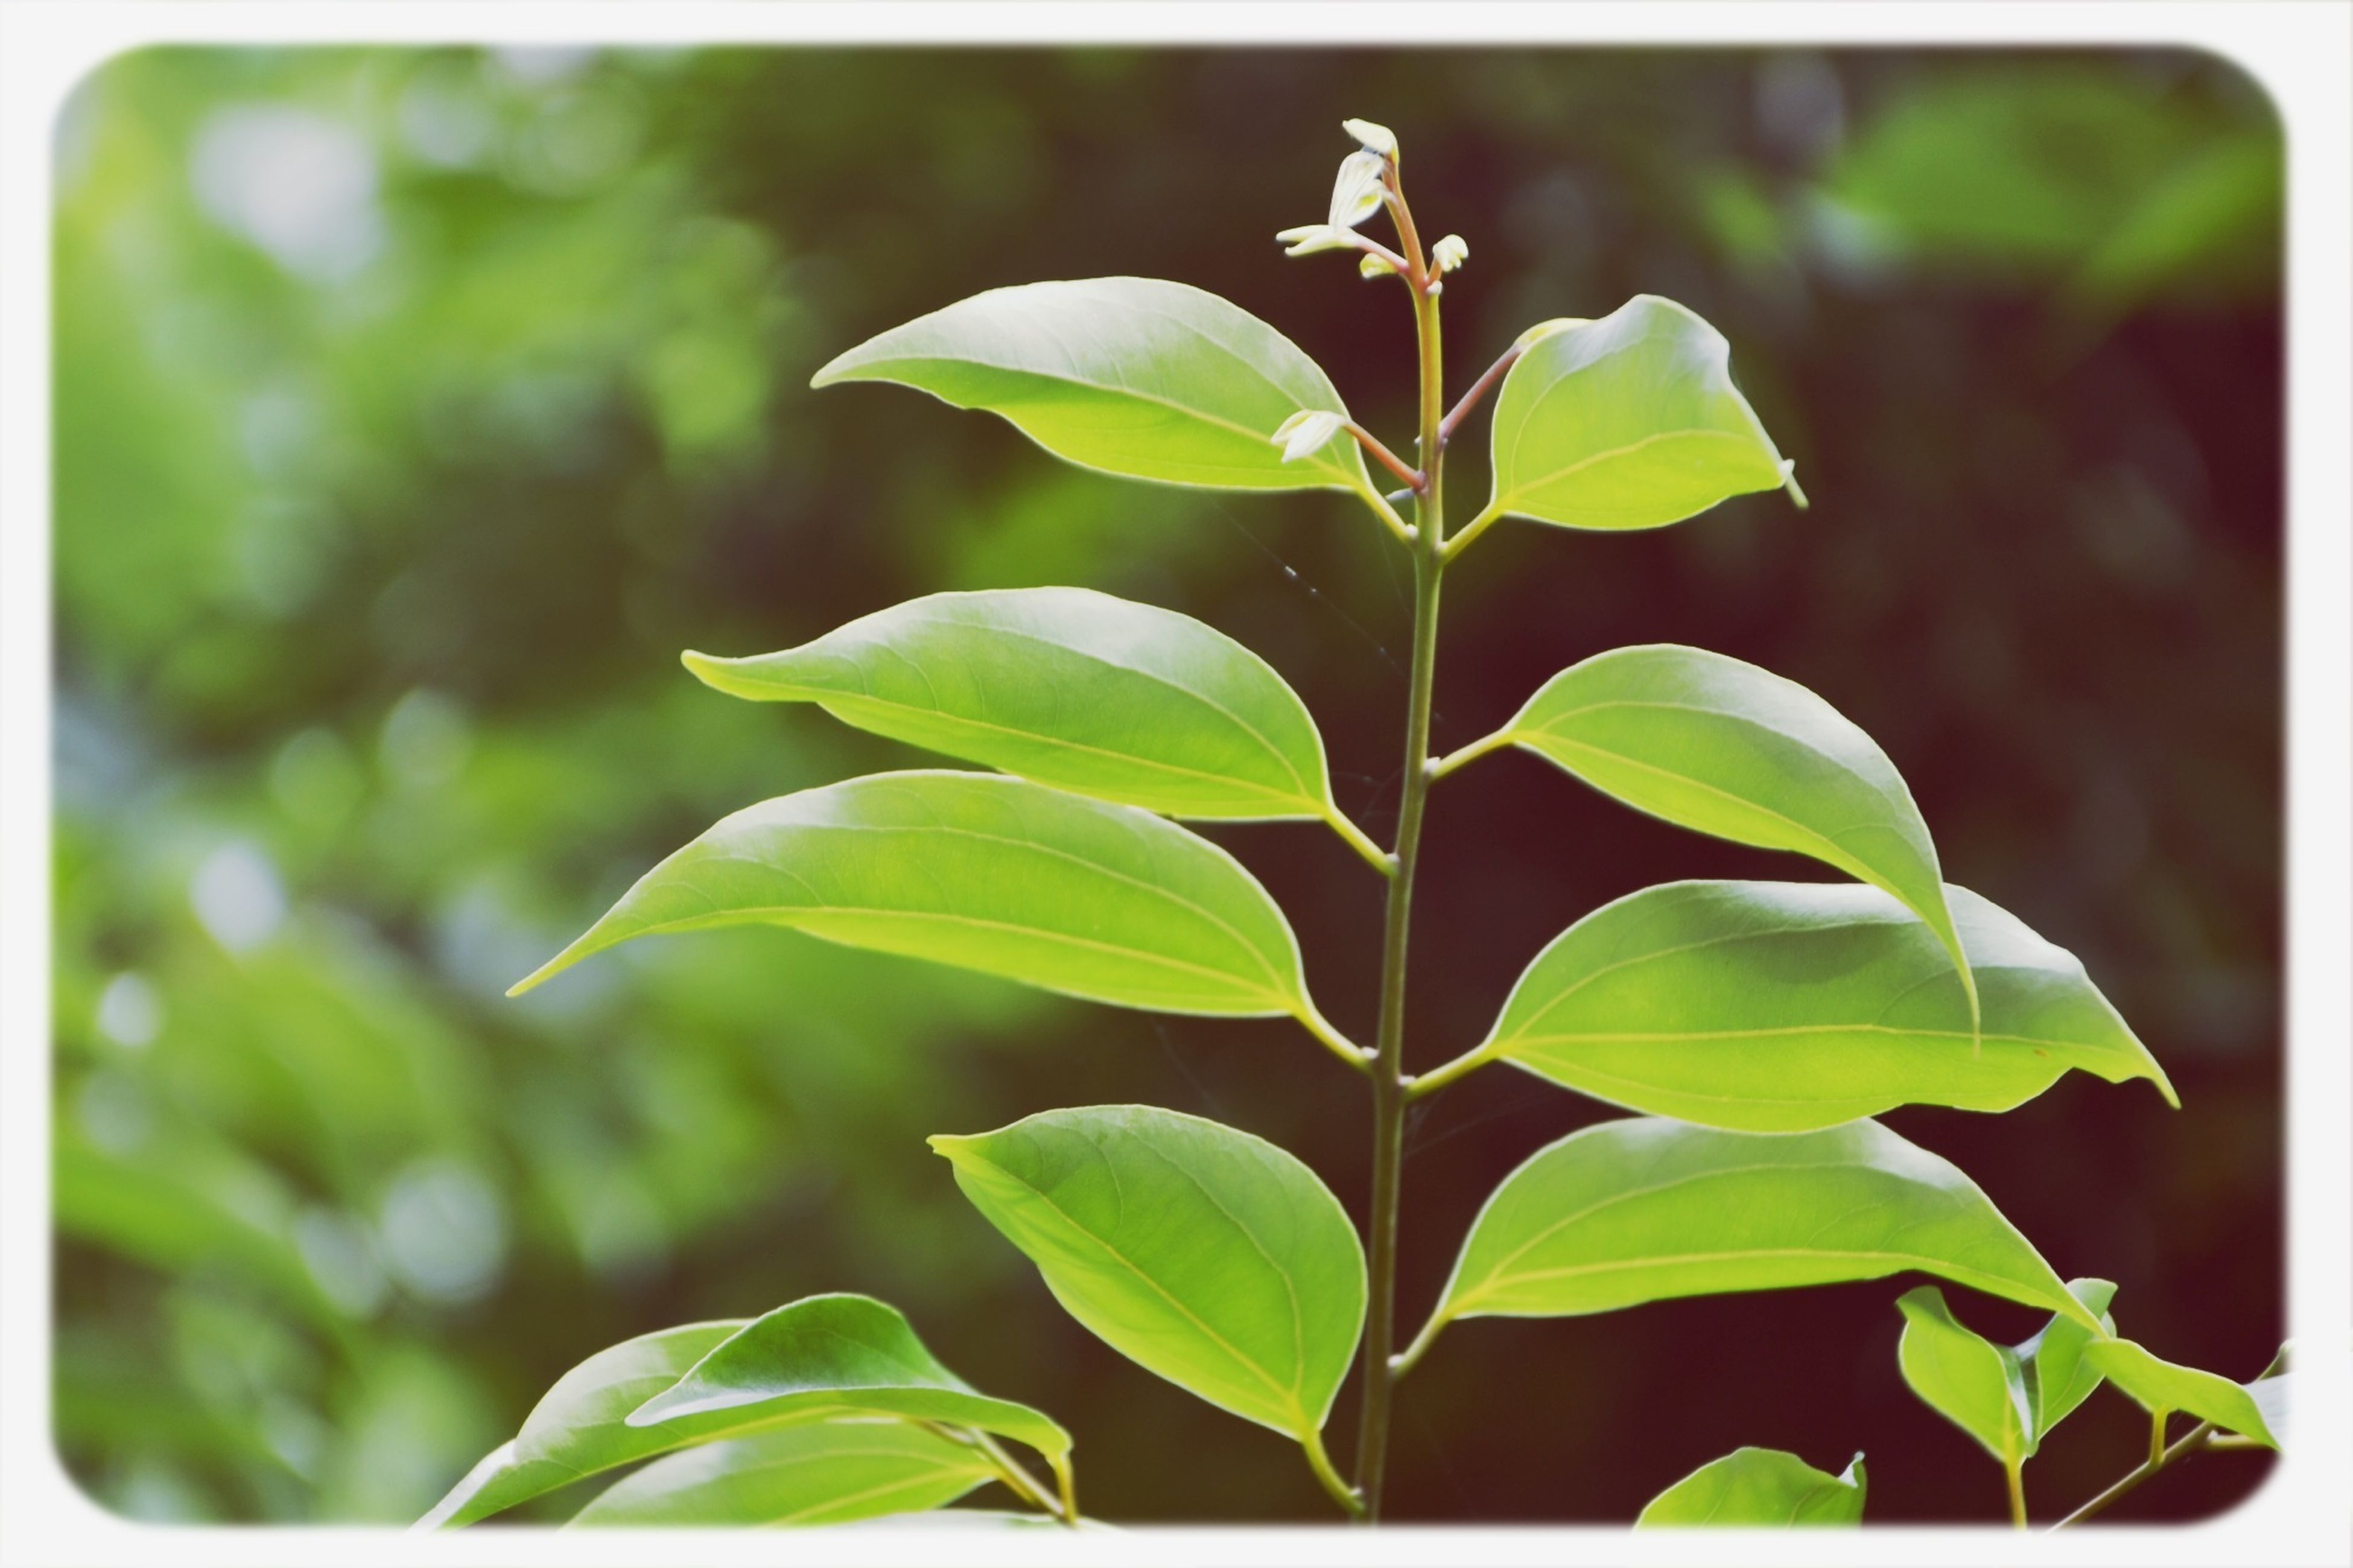 transfer print, leaf, growth, auto post production filter, green color, plant, close-up, nature, focus on foreground, freshness, beauty in nature, growing, stem, day, fragility, outdoors, selective focus, green, no people, botany